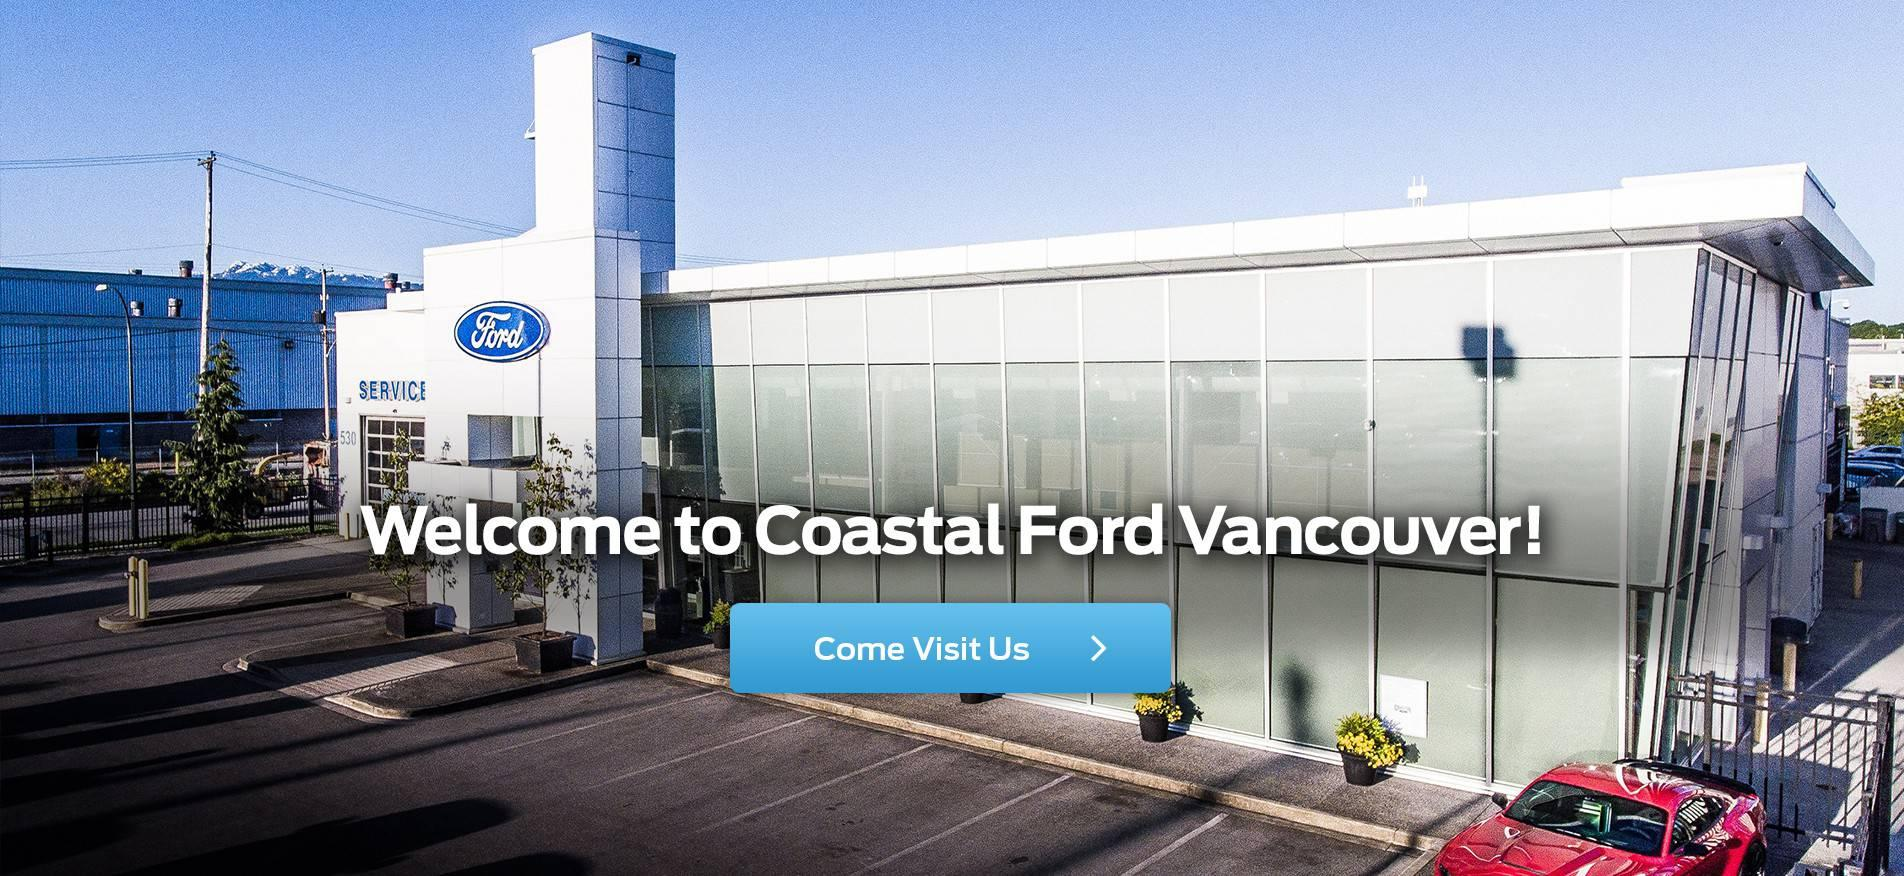 Welcome to Coastal Ford Vancouver!